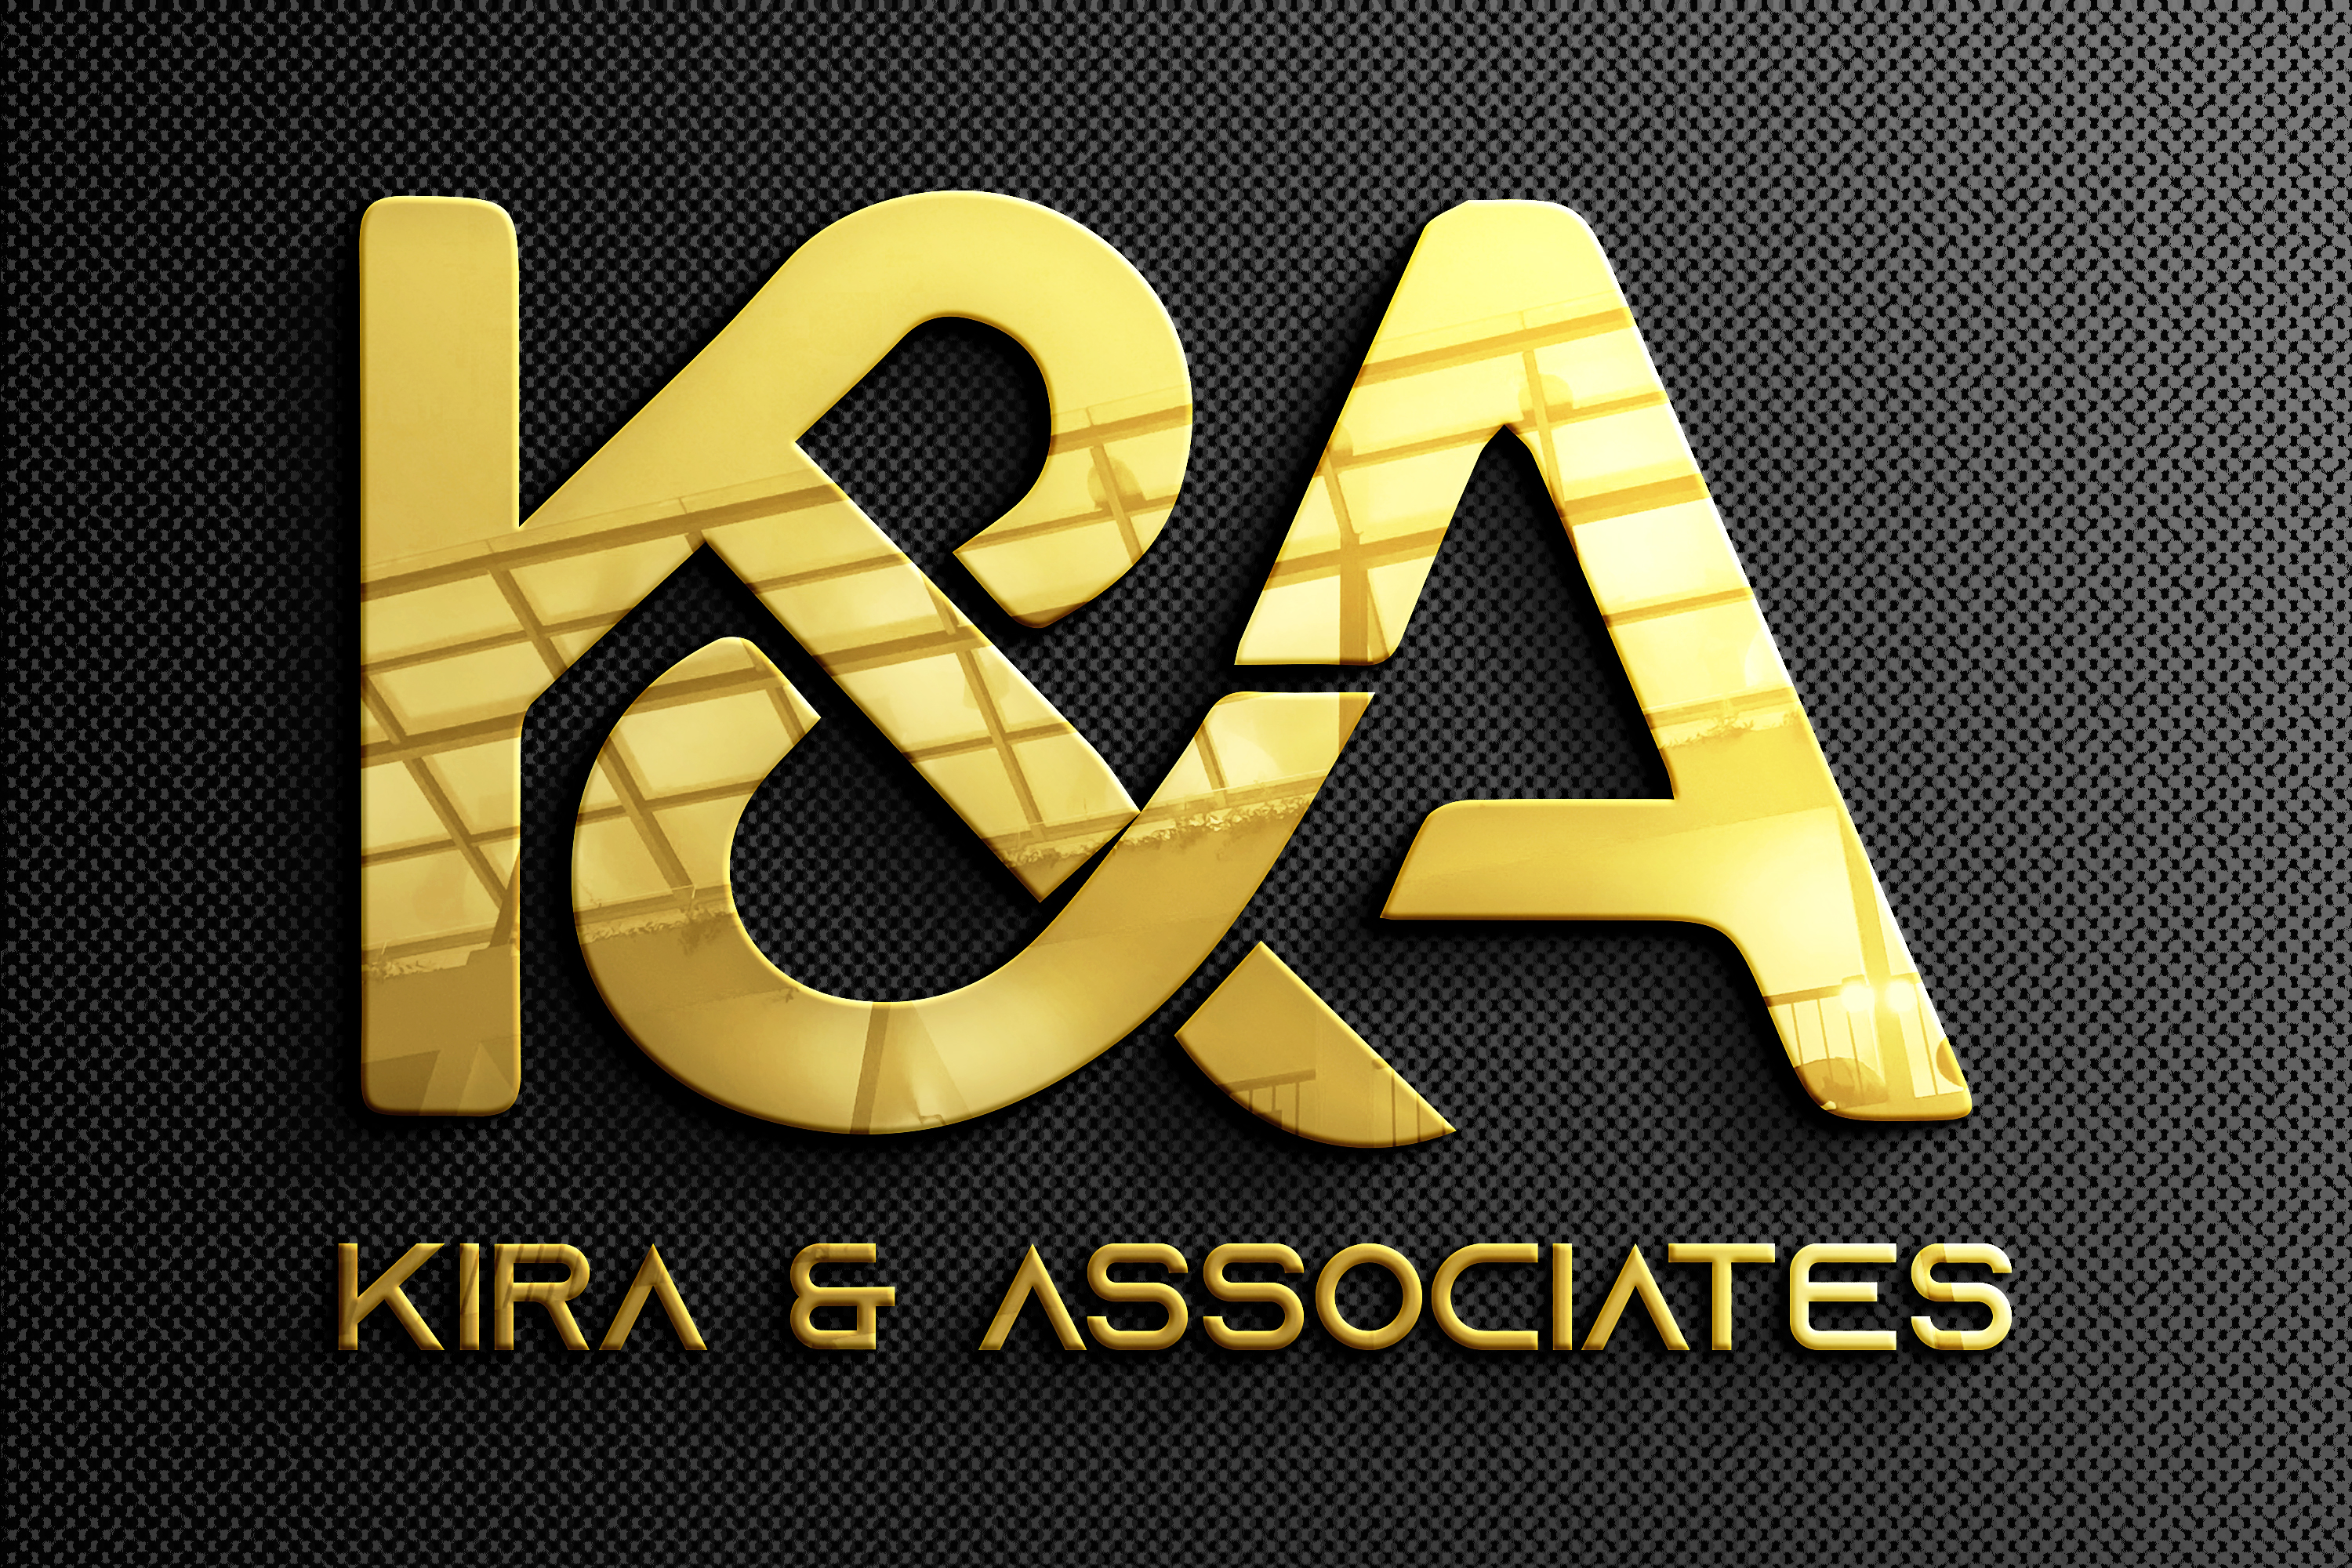 Kira & Associates Brings Huge Bouquet of Digital Services for Client Success in Every Field 1